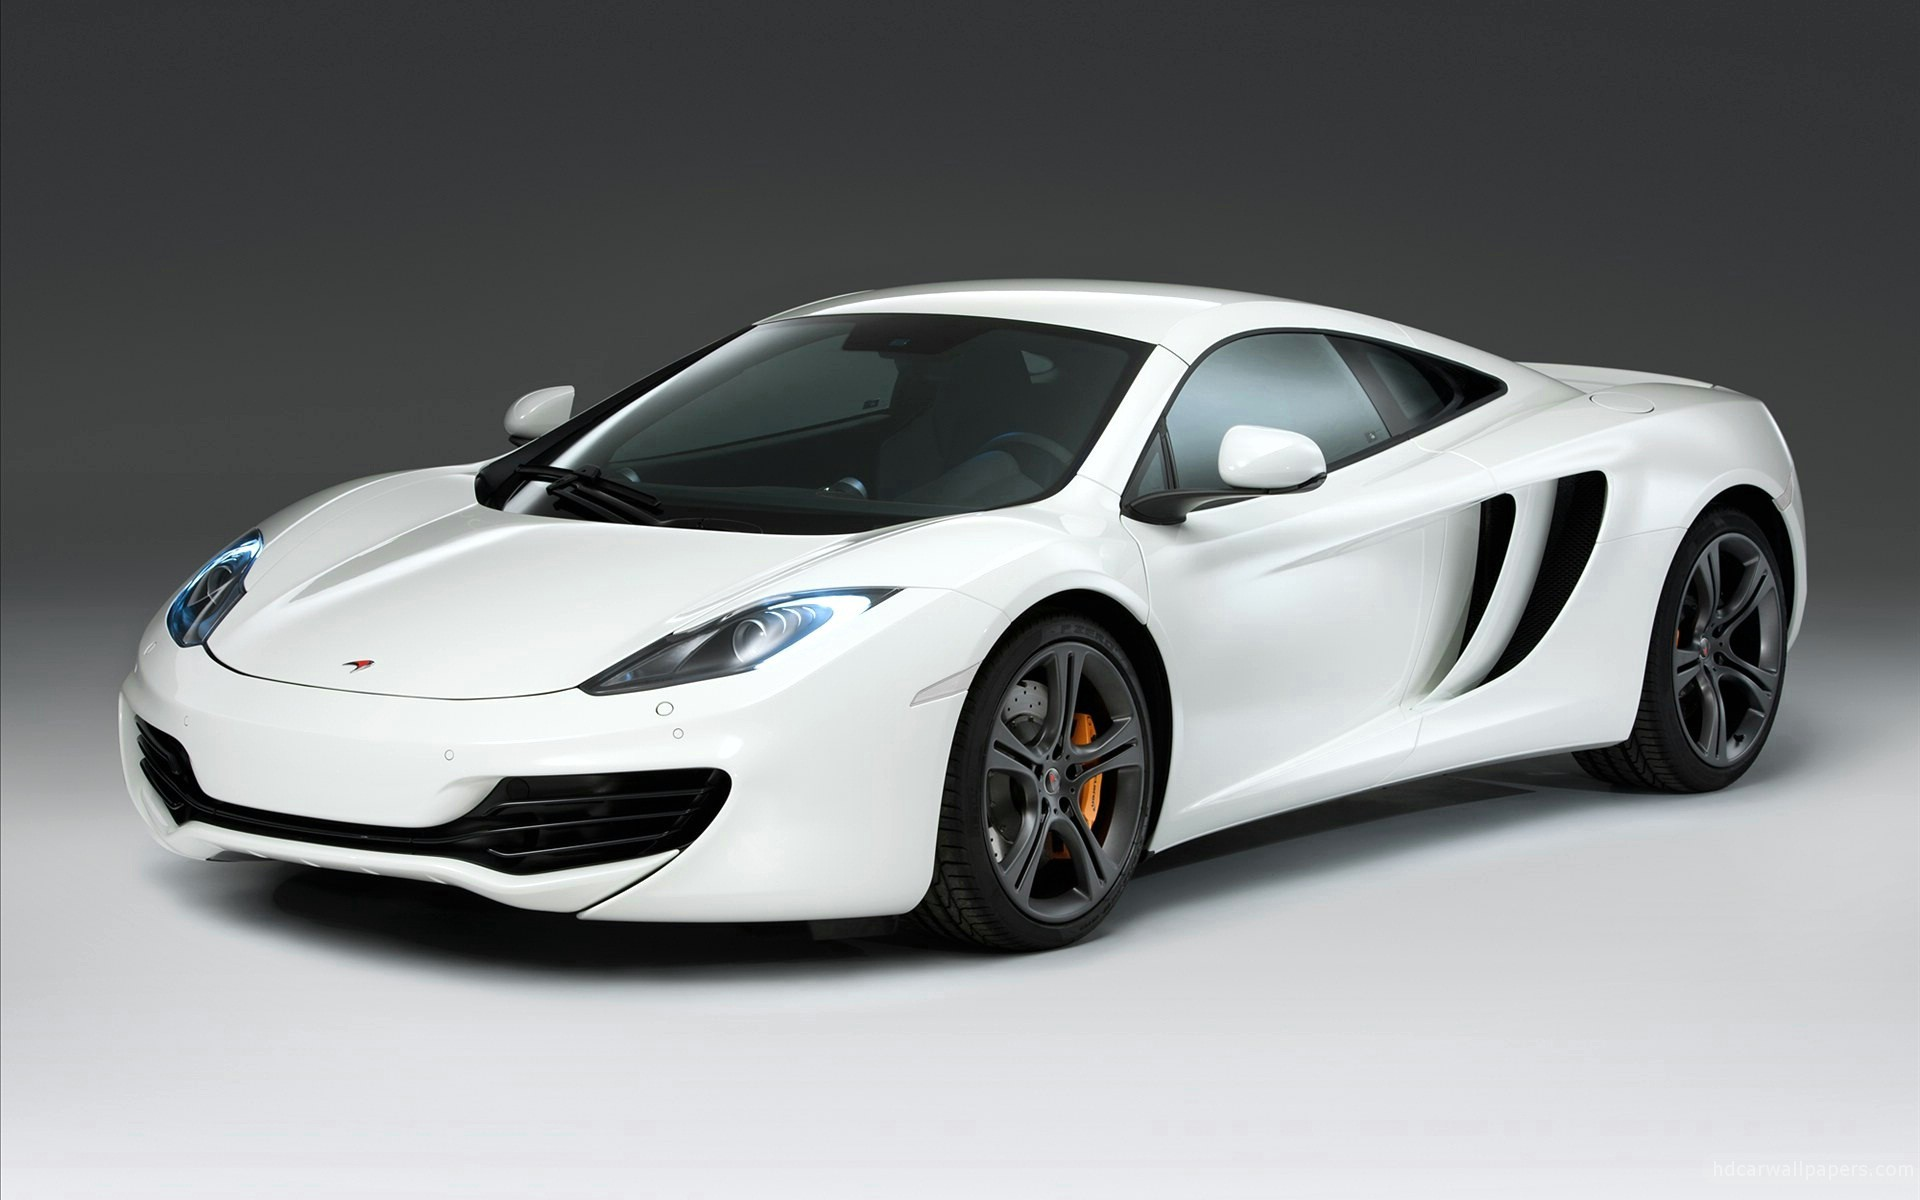 2012 Mclaren Mp4 12c Wallpaper Hd Car Wallpapers Id 2104